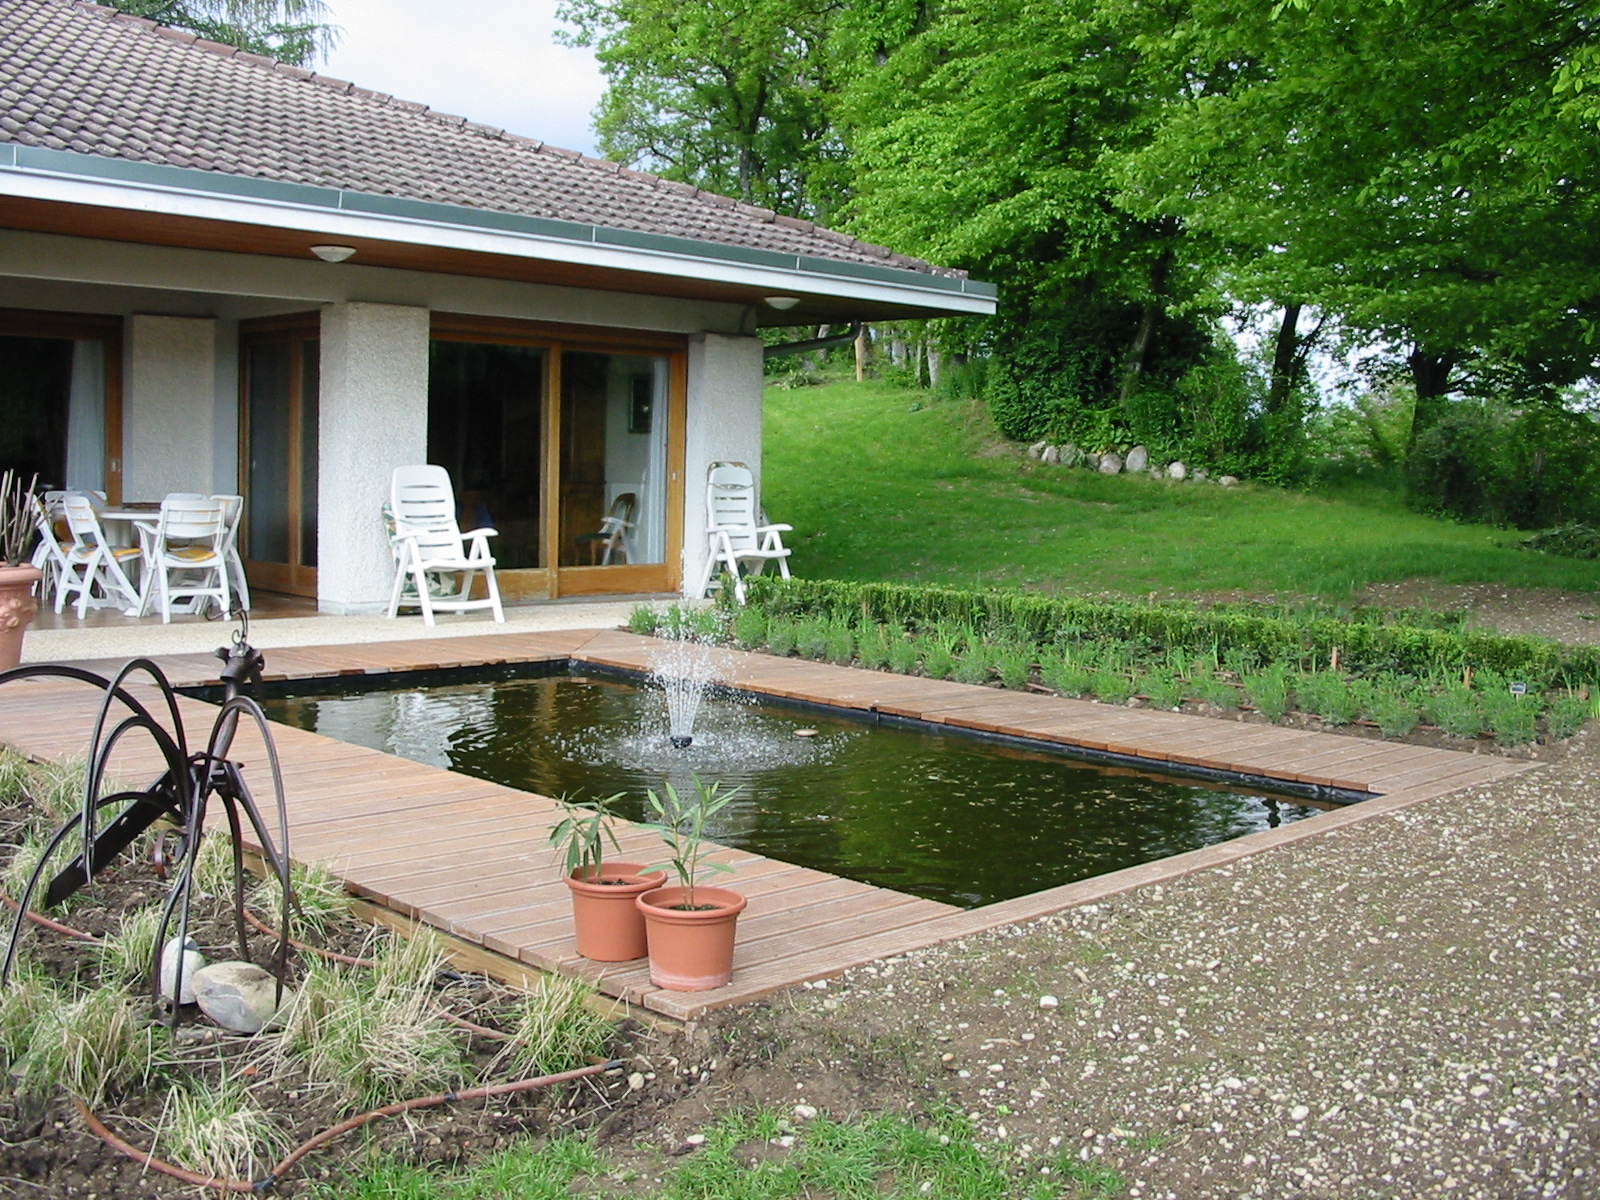 Paysagiste et am nagement de jardin thonon et annemasse bassin d 39 agr ment for Photo bassin de jardin